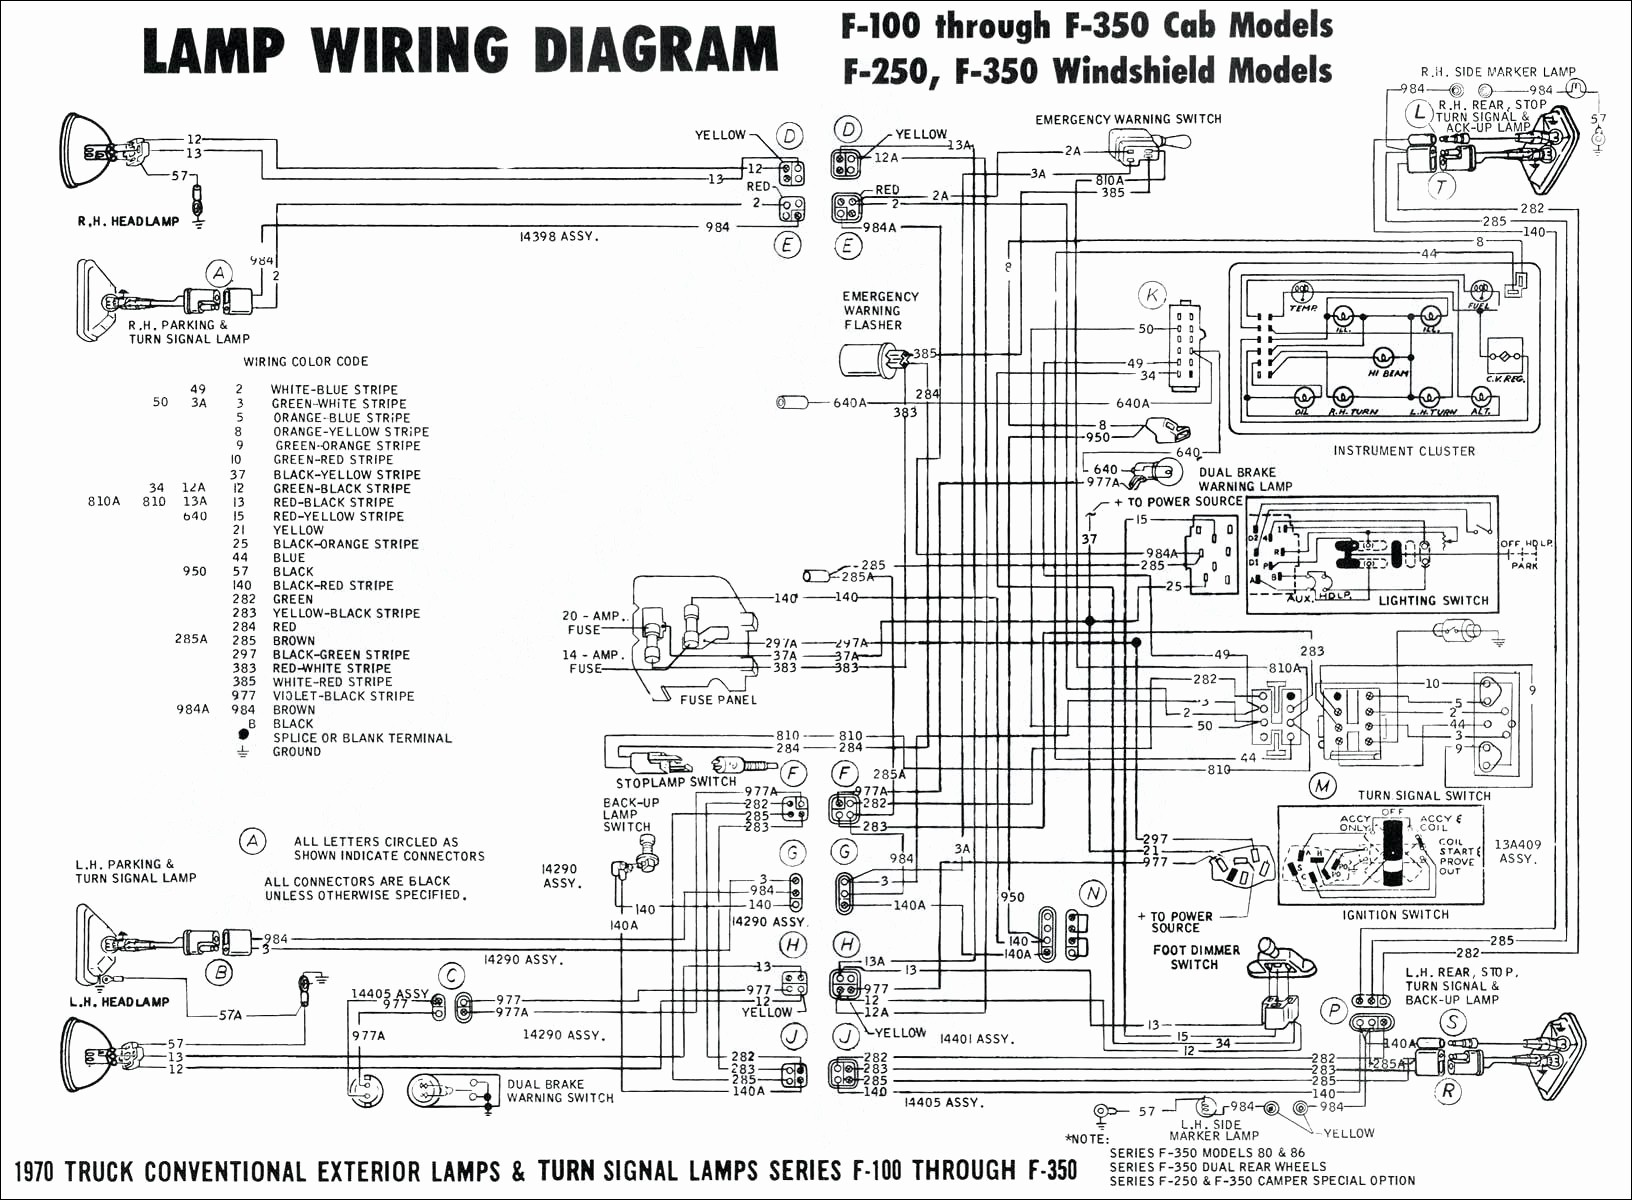 Gm Power Window Switch Diagram Electrical Schematics Pressure Sensor Wiring Manual Schematic Diagrams